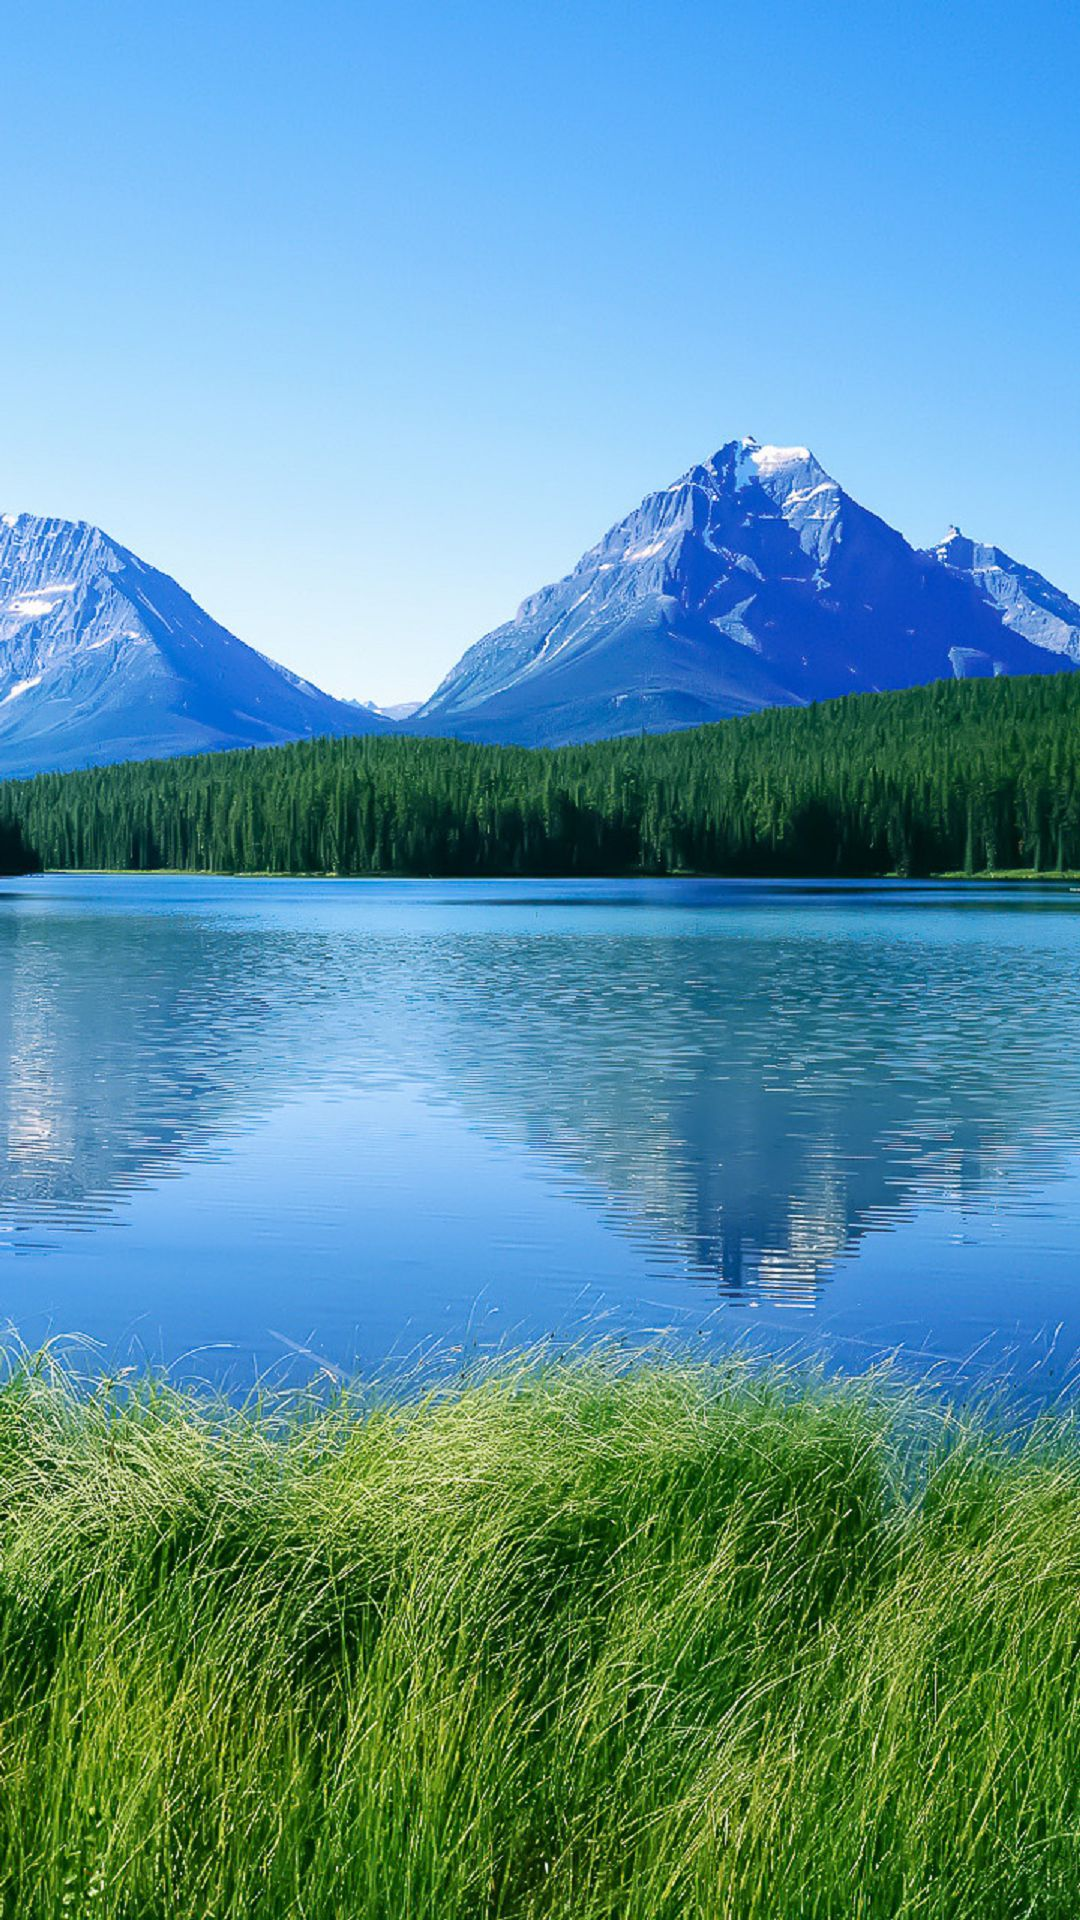 Htc One M8 Wallpaper Hd Blue Lake Mountains Green Grass Best Htc One Wallpapers